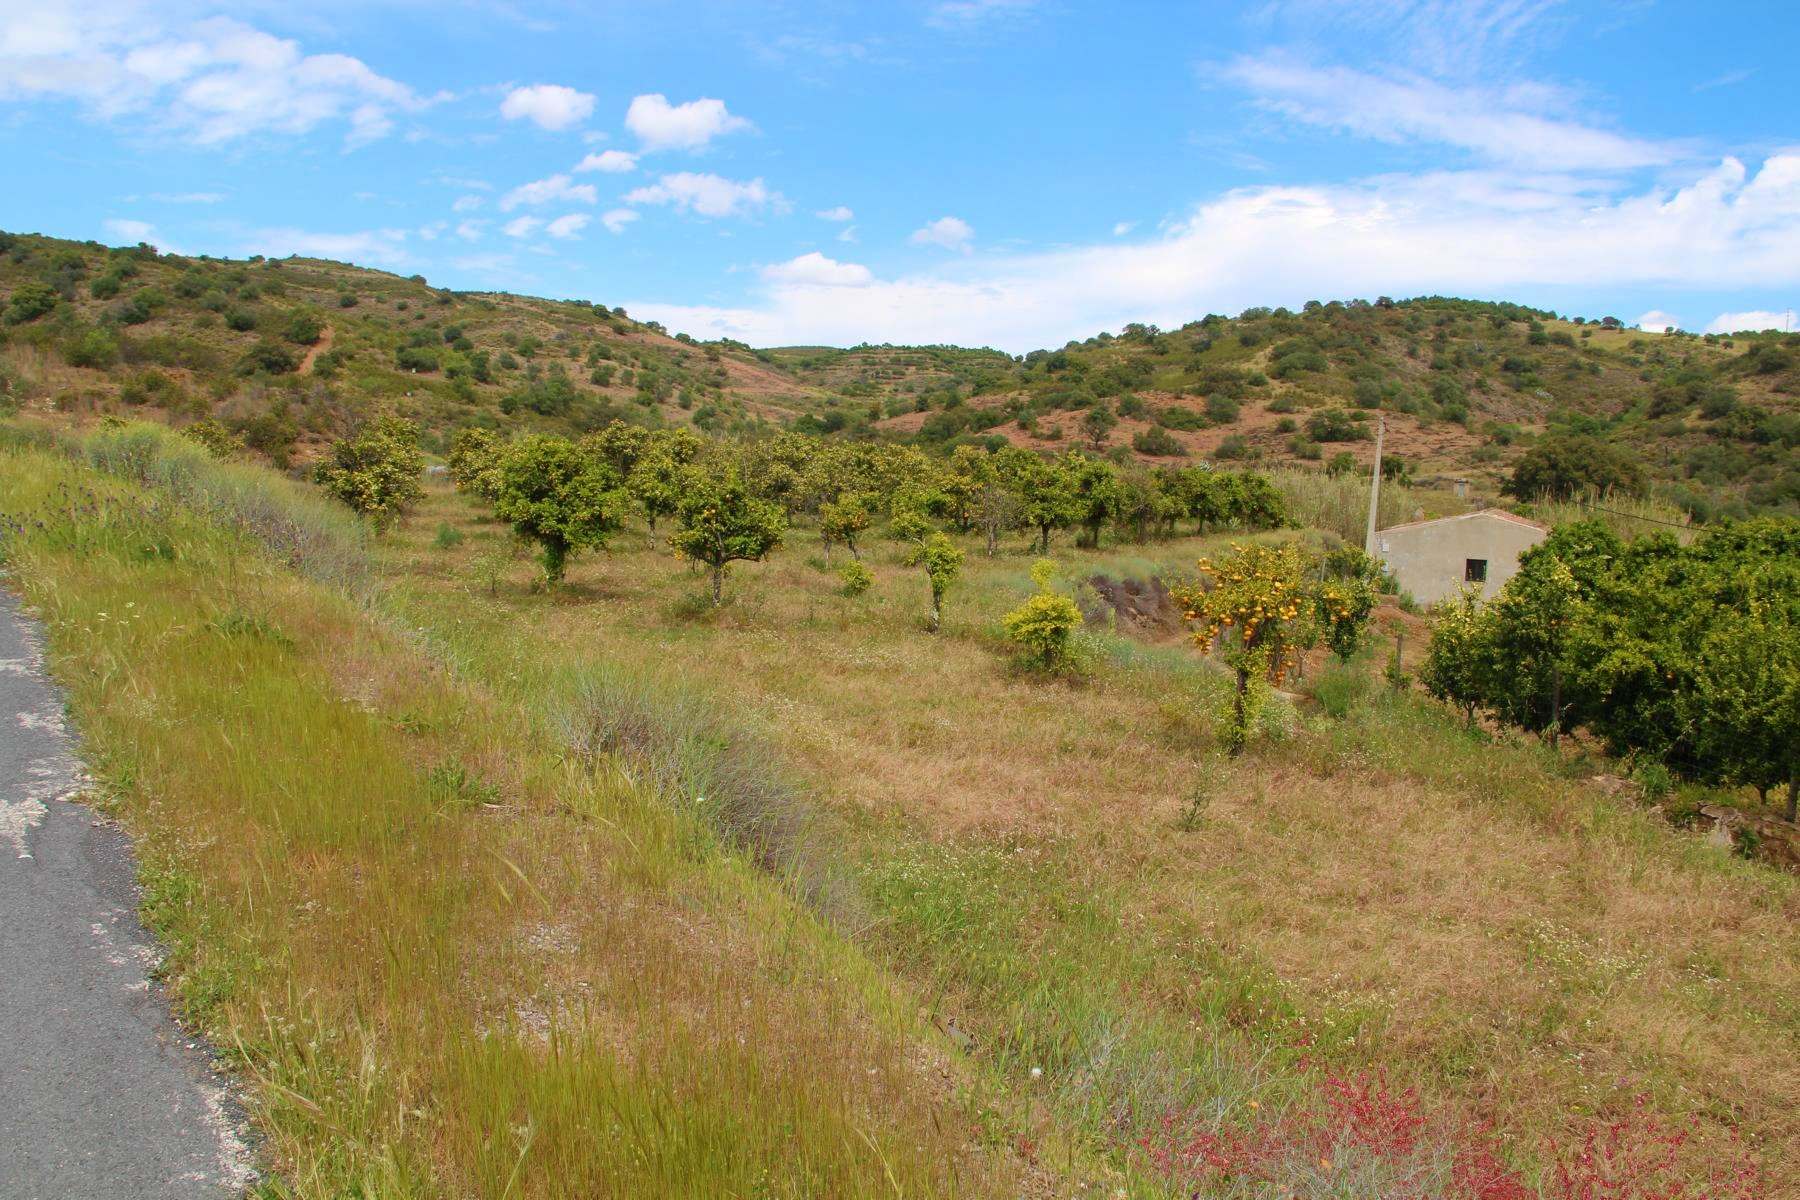 Farm, ruin, renovation project, Algarve